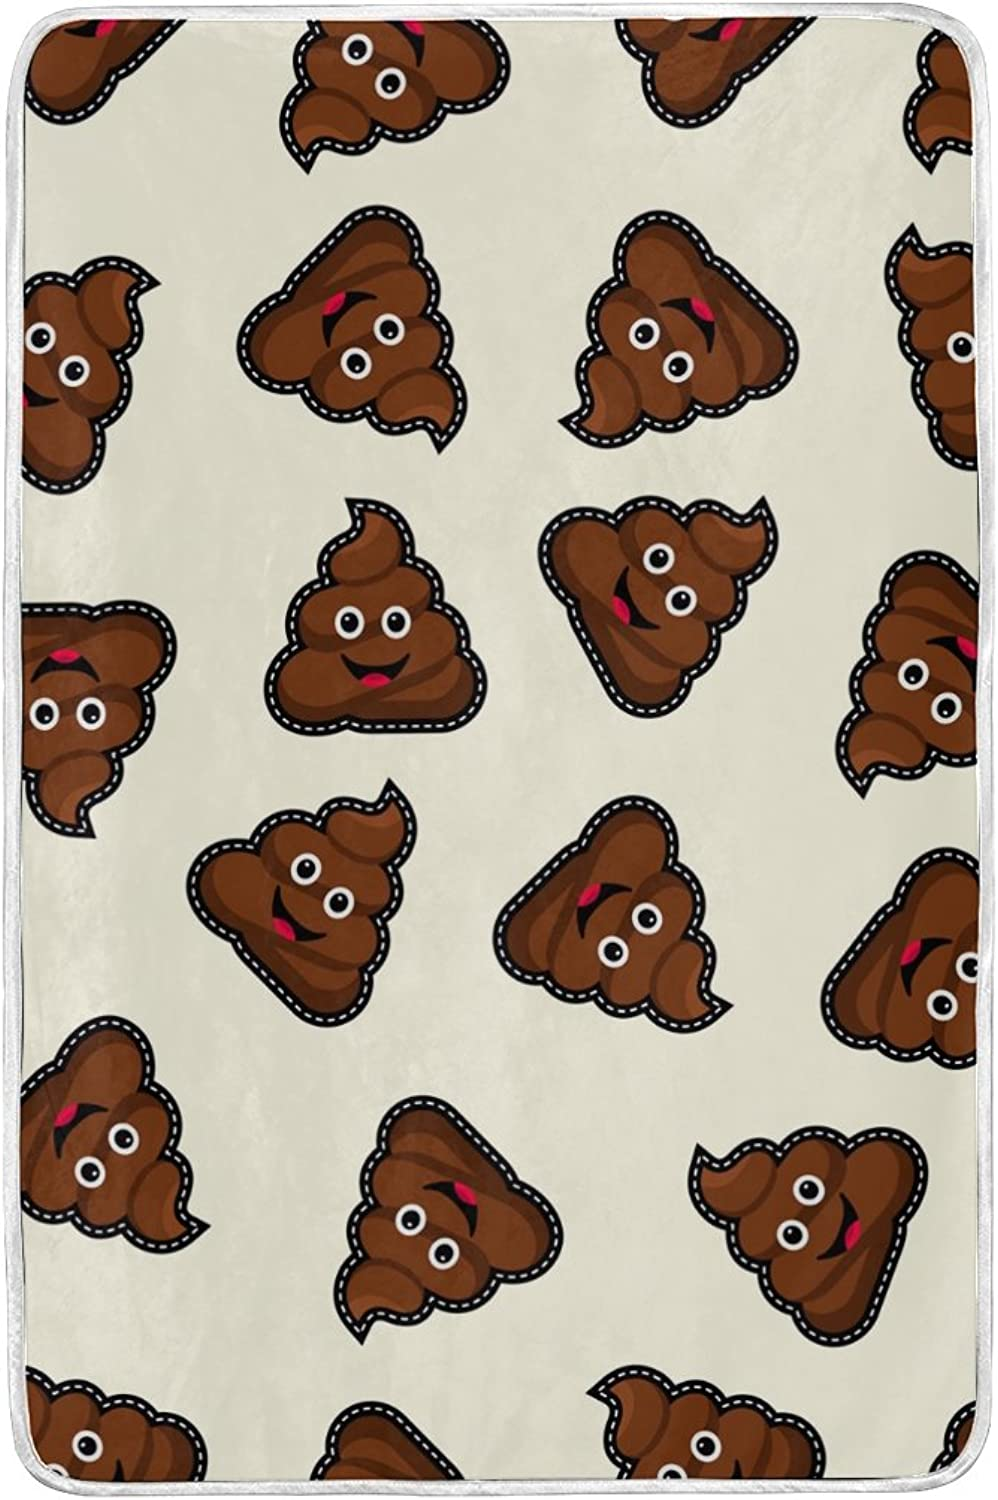 ALAZA Poop Icon Blankets Lightweight Blanket for Adults Men Women Girls Kids Girls Boys Teens Extra Soft Polyester Fabric Super Warm Sofa Blanket Throw Size 60 x 90 Inch